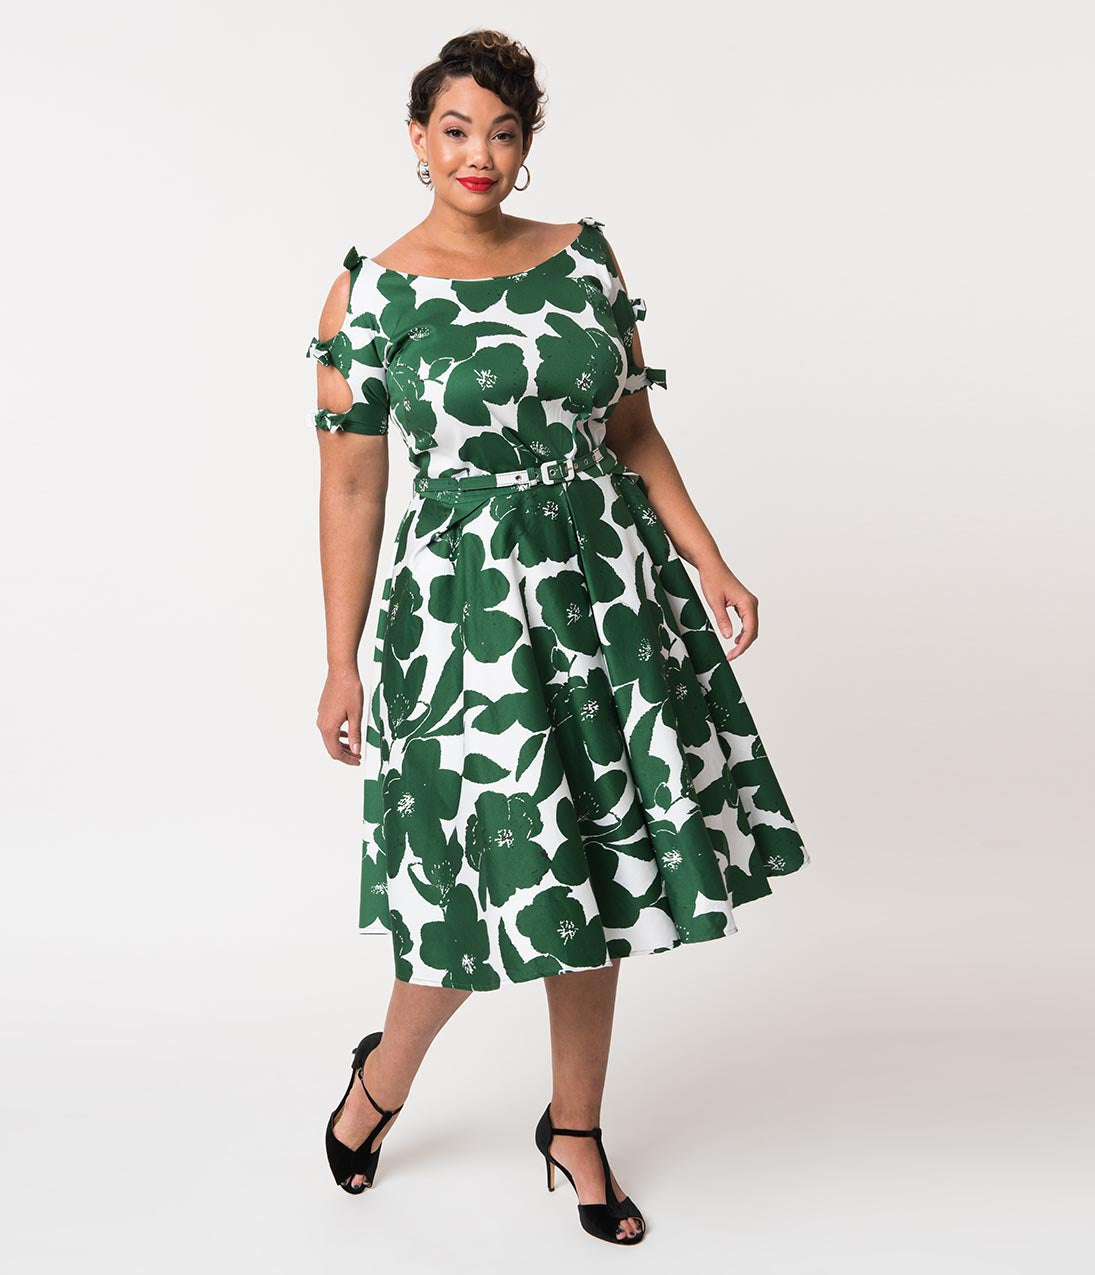 dresses plus size 50s 1950s inspired style 60s – Fashion dresses